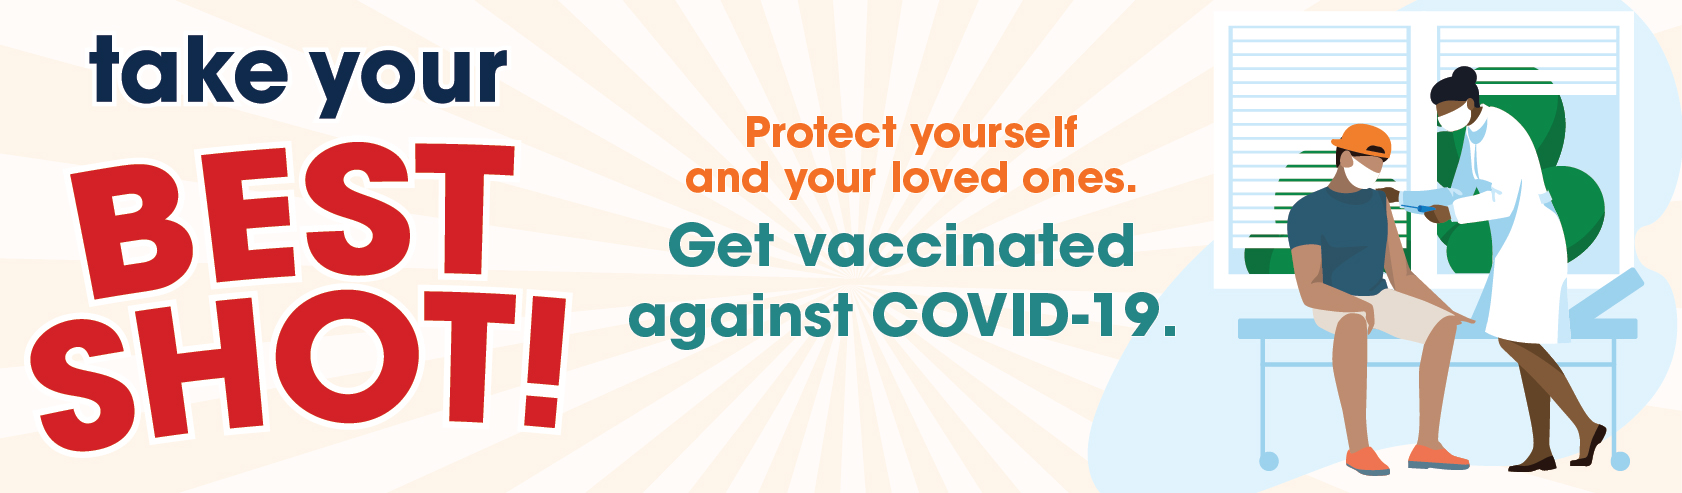 Take your BEST SHOT! Protect yourself and your loved ones. Get vaccinated against COVID-19.